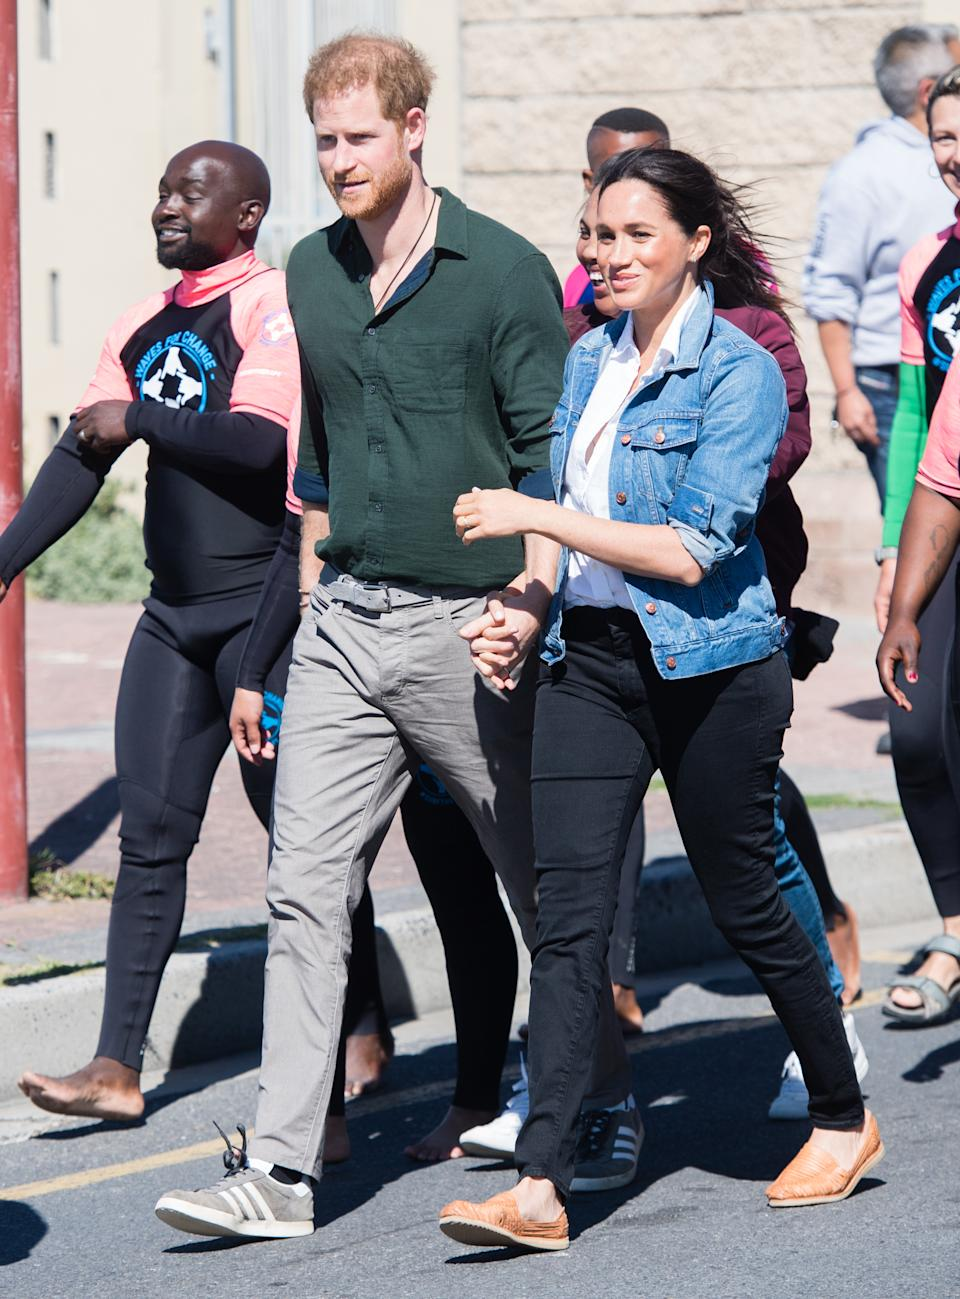 Prince Harry, Duke of Sussex and Meghan, Duchess of Sussex visit Waves for Change, an NGO, at Monwabisi Beach during their royal tour of South Africa on September 24, 2019 in Various Cities, South Africa.